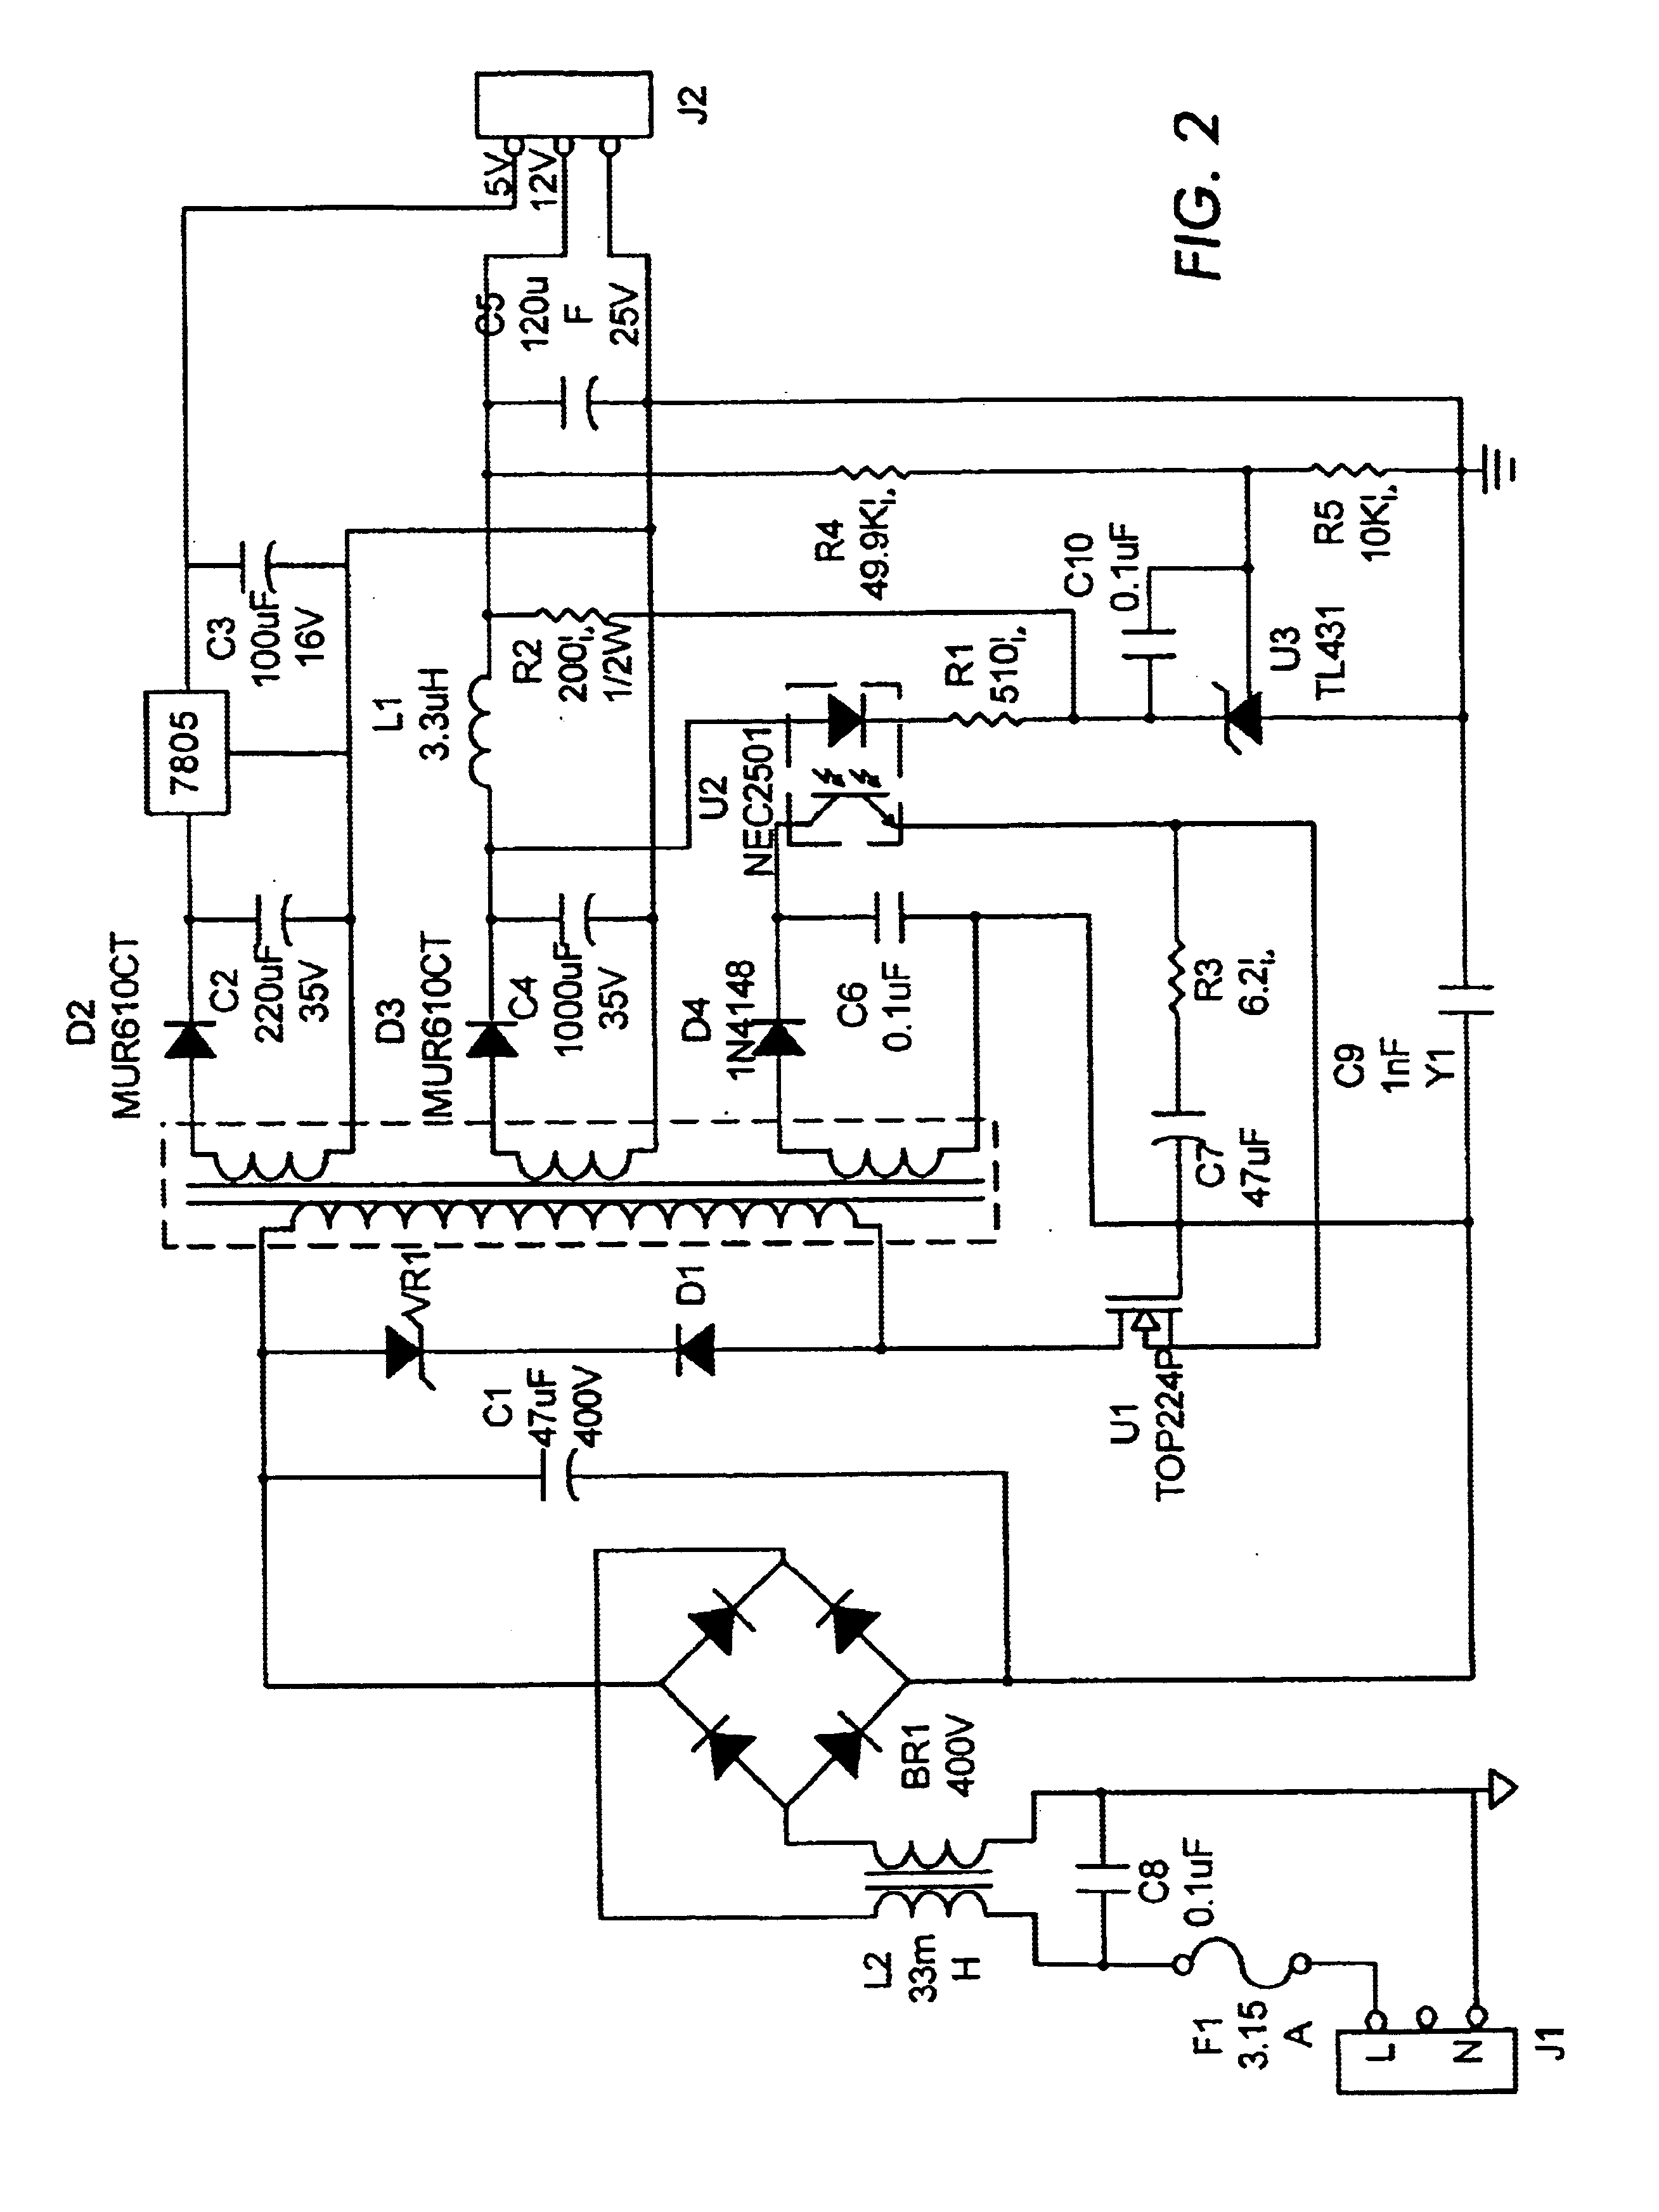 Wiring diagram ac co electrical drawing wiring diagram patent us6879497 multiple output power adapter google patents rh google co in wiring diagram ac compressor wiring diagram of a consumer unit cheapraybanclubmaster Images